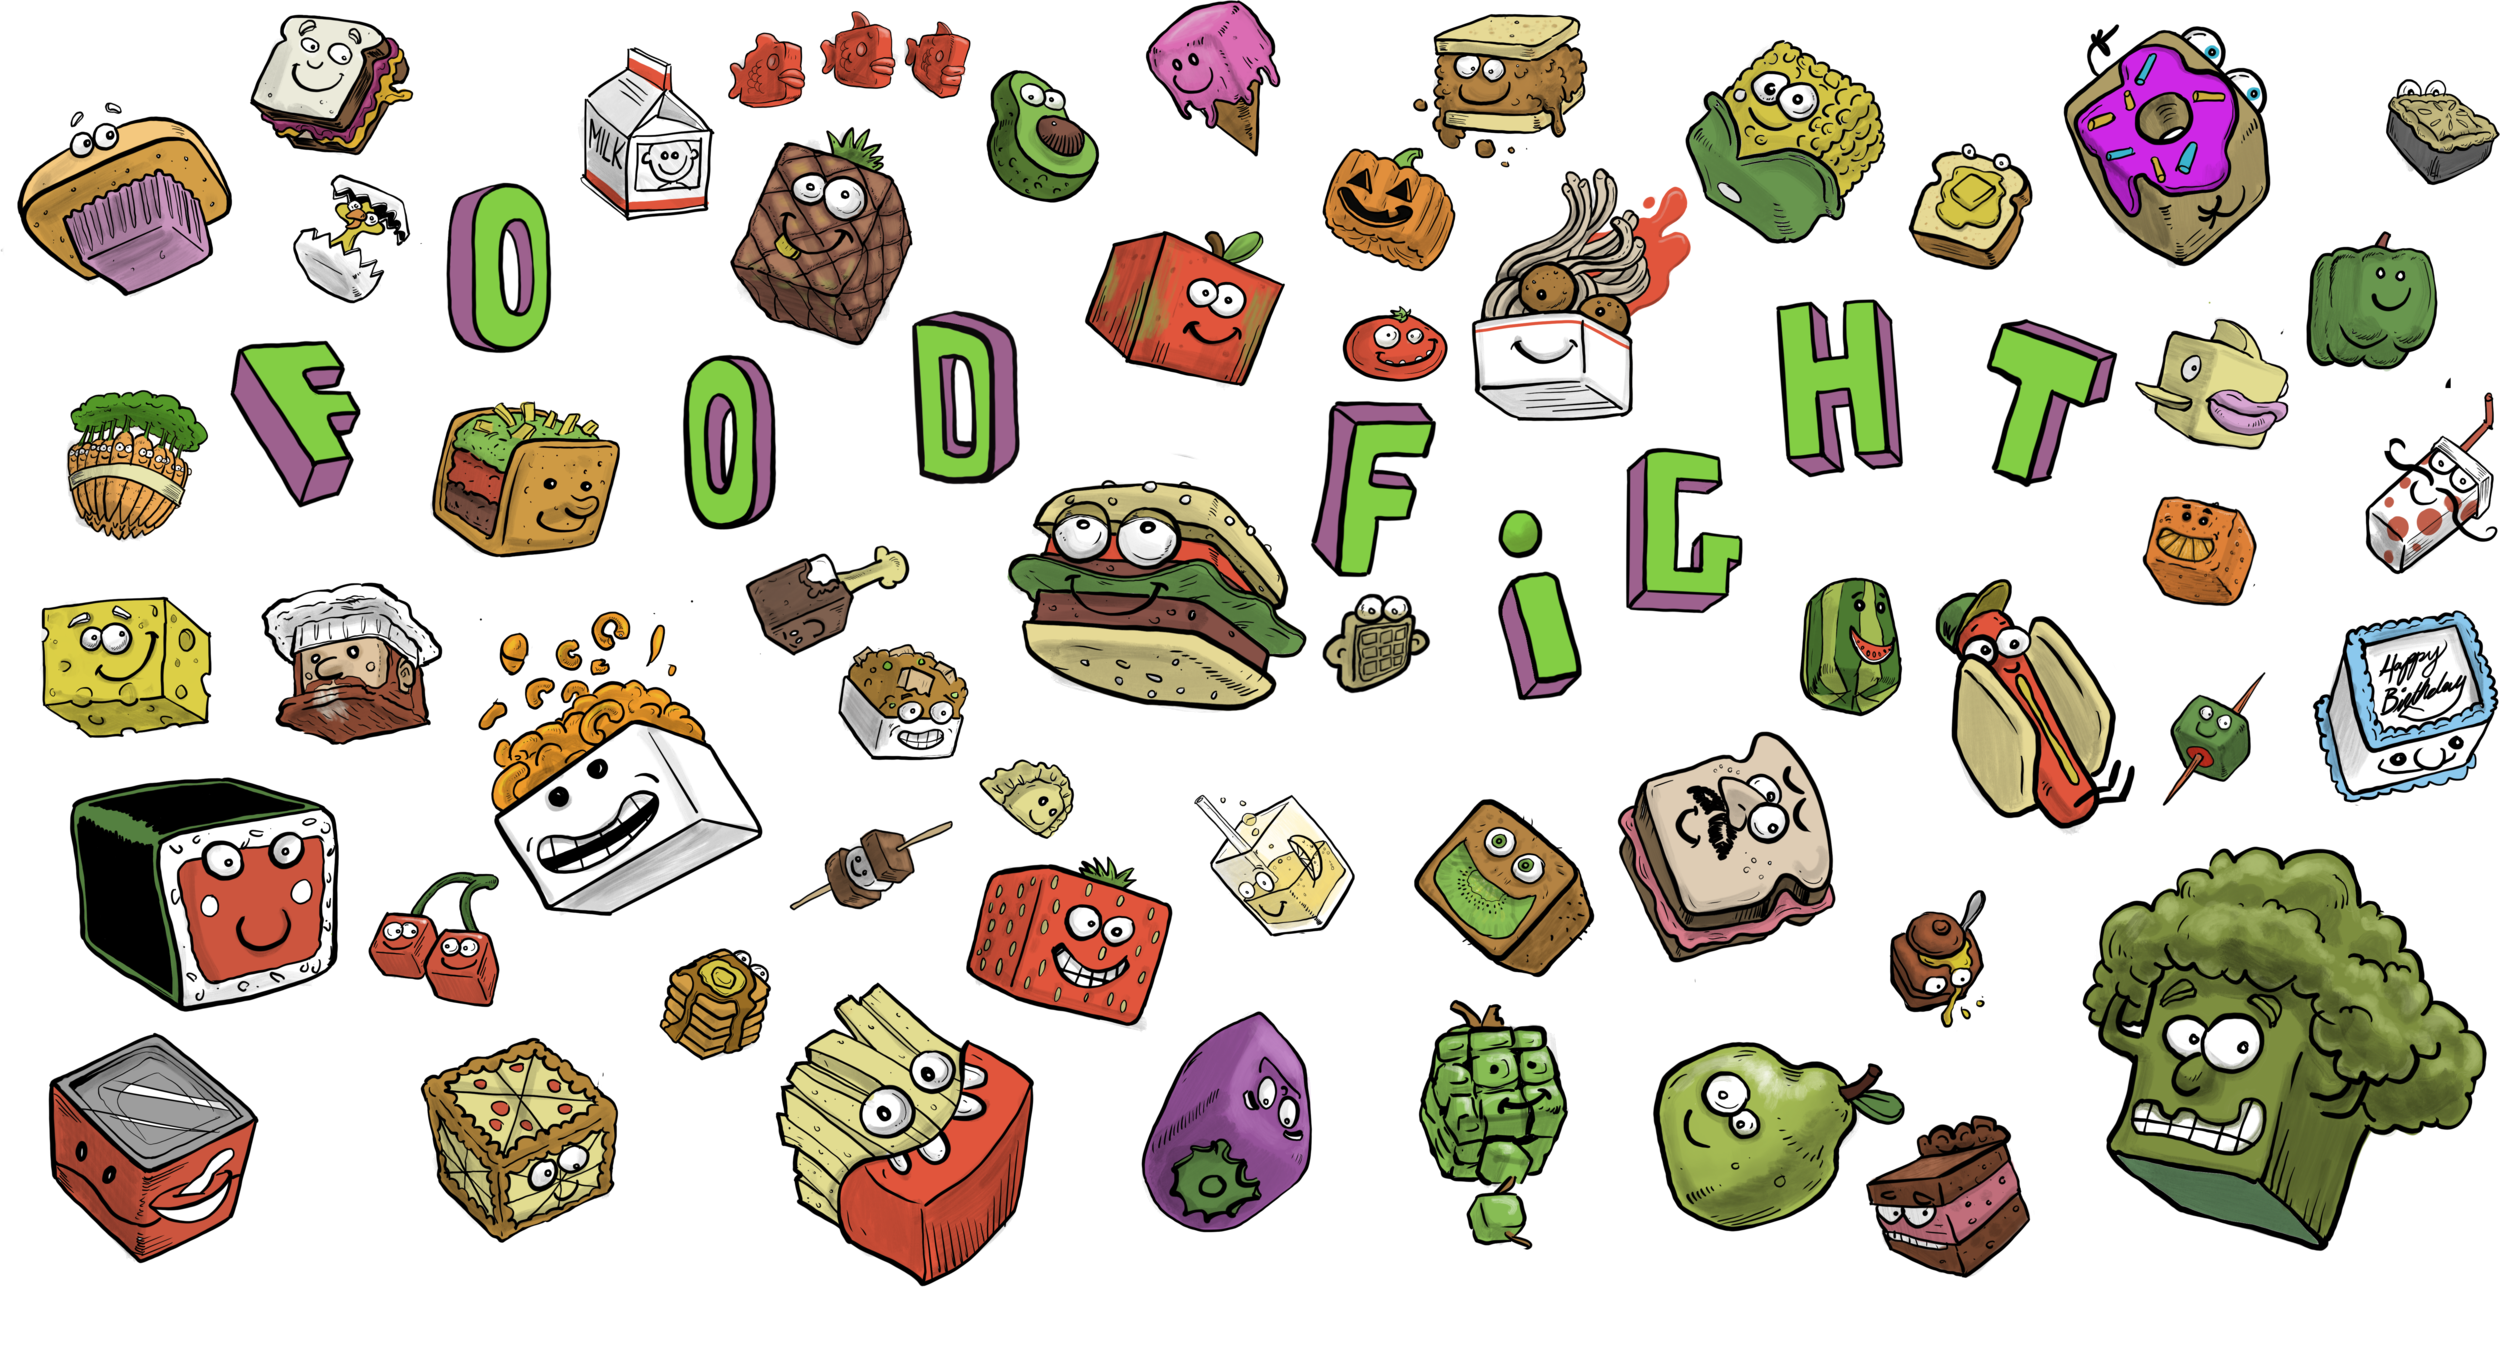 FoodFight_comp_merged.png